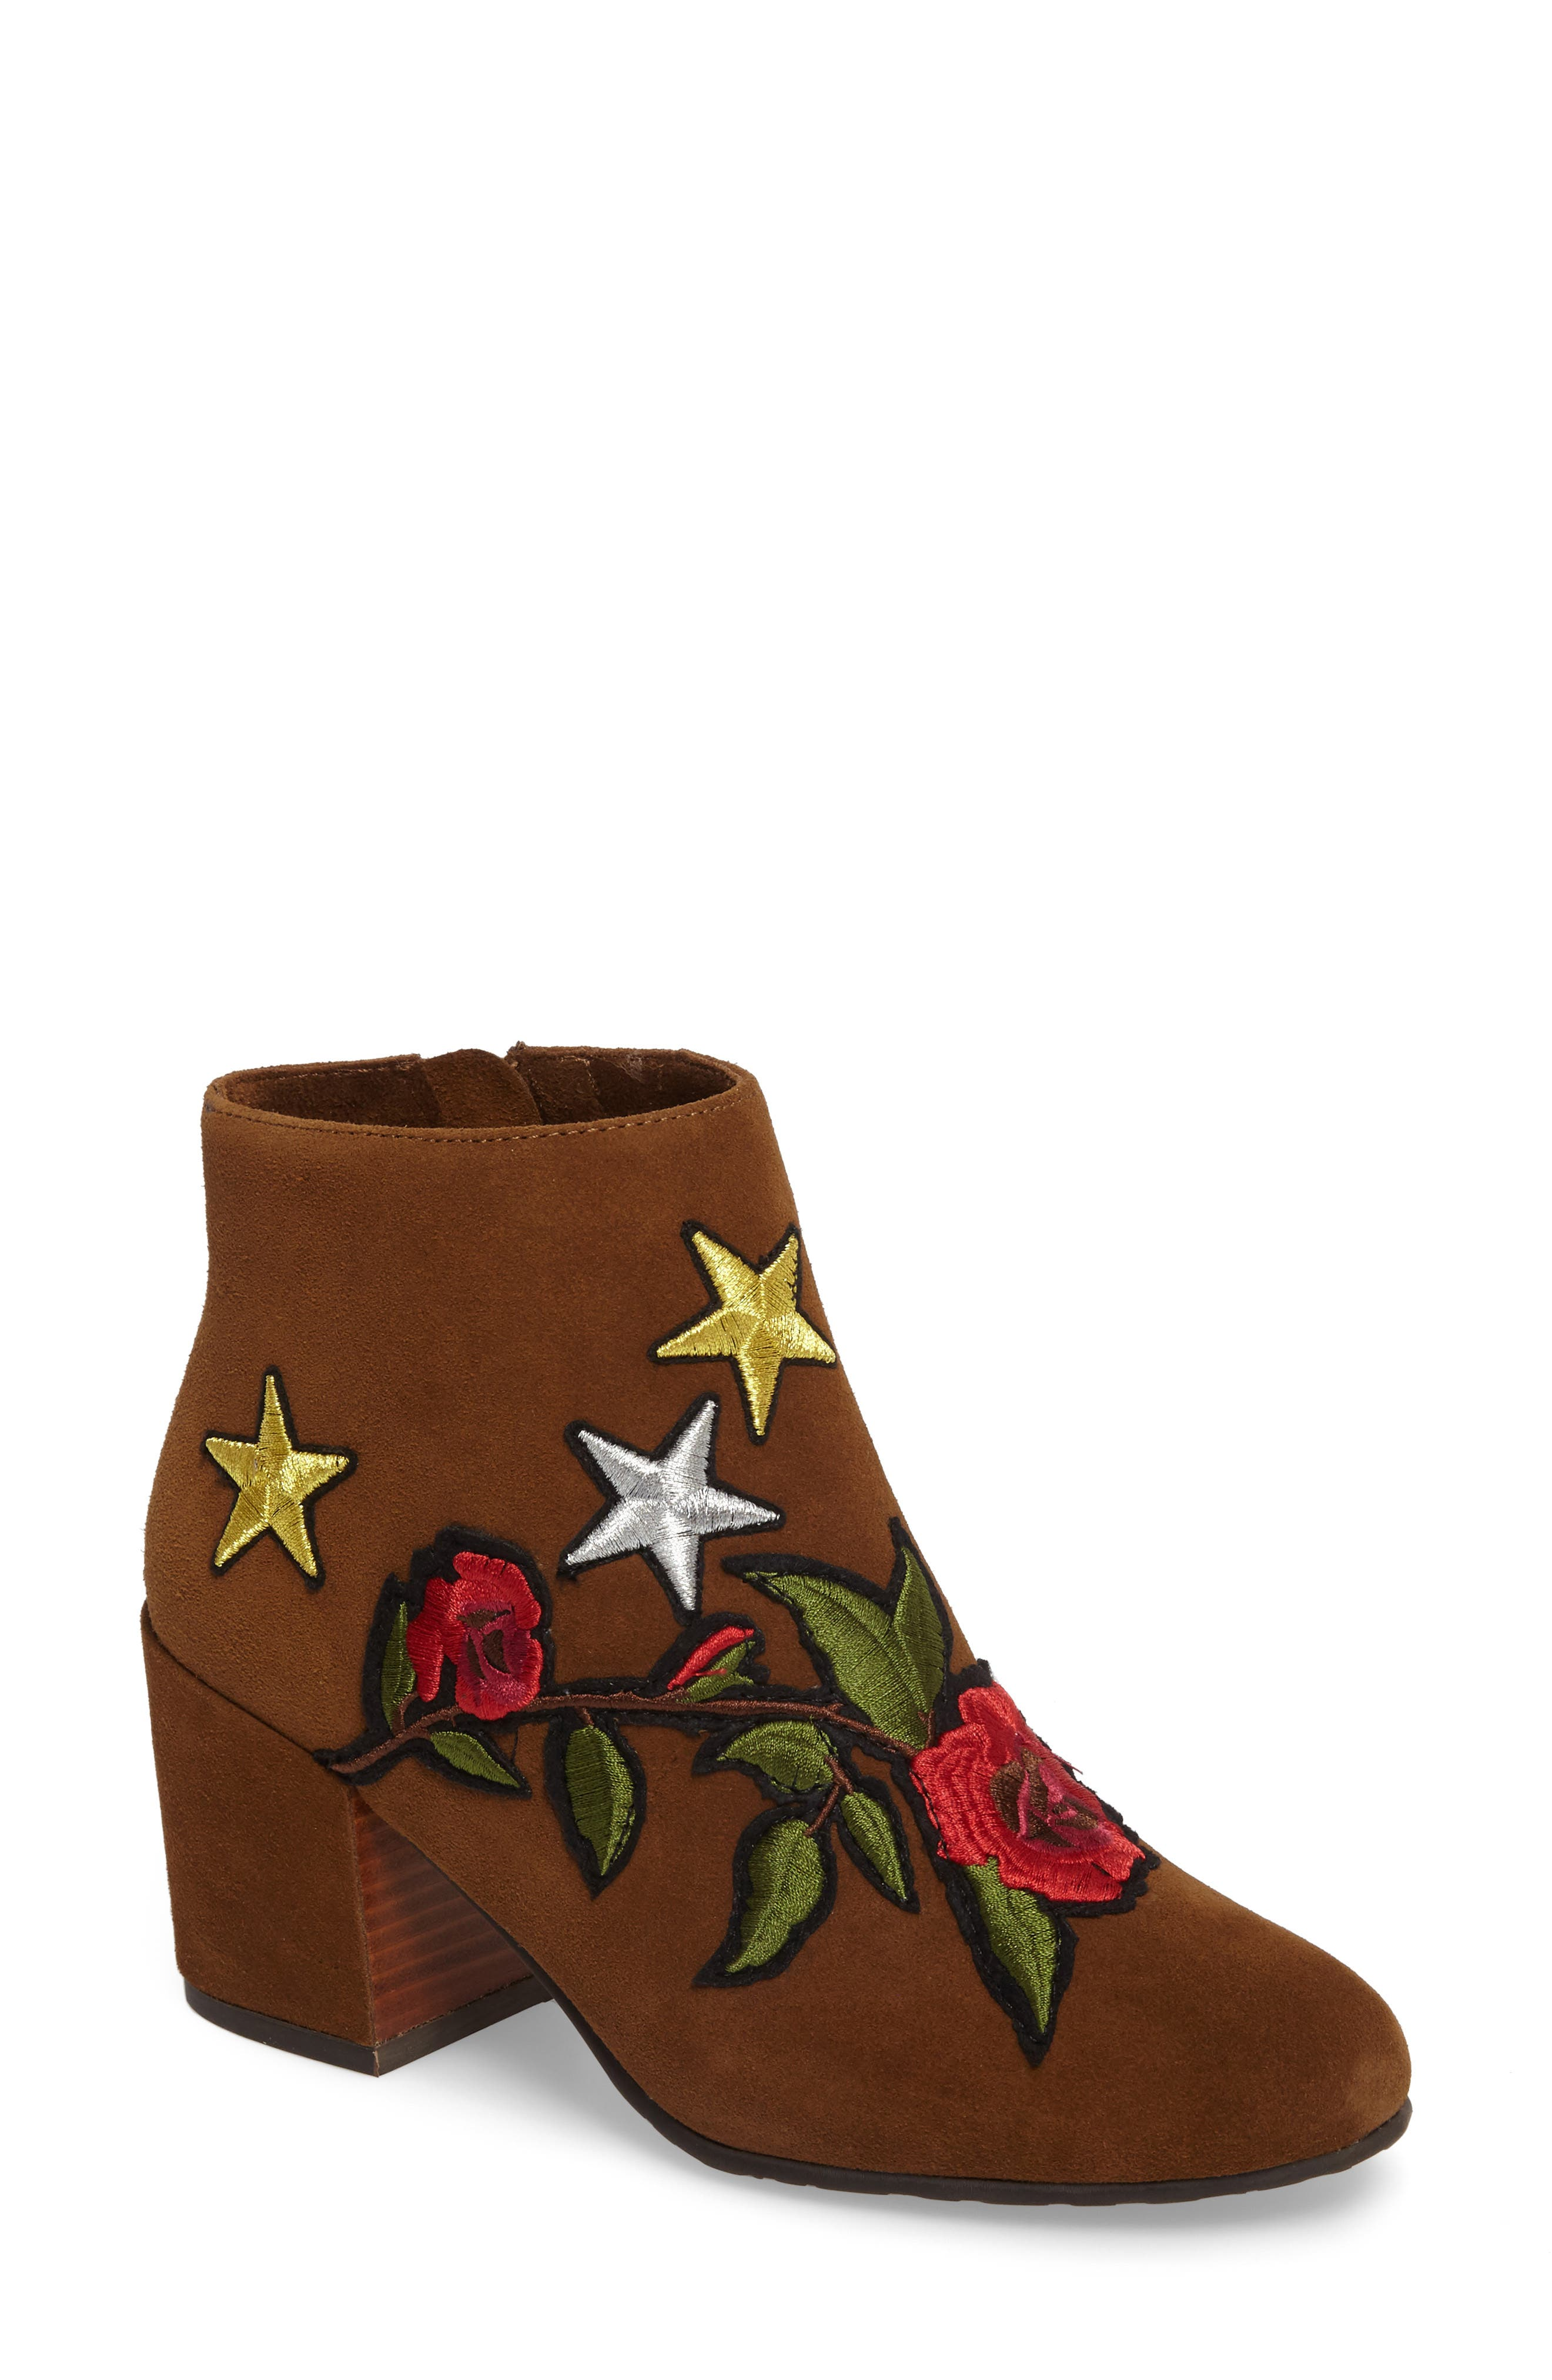 GENTLE SOULS BY KENNETH COLE, Blaise Patches Bootie, Main thumbnail 1, color, WALNUT SUEDE